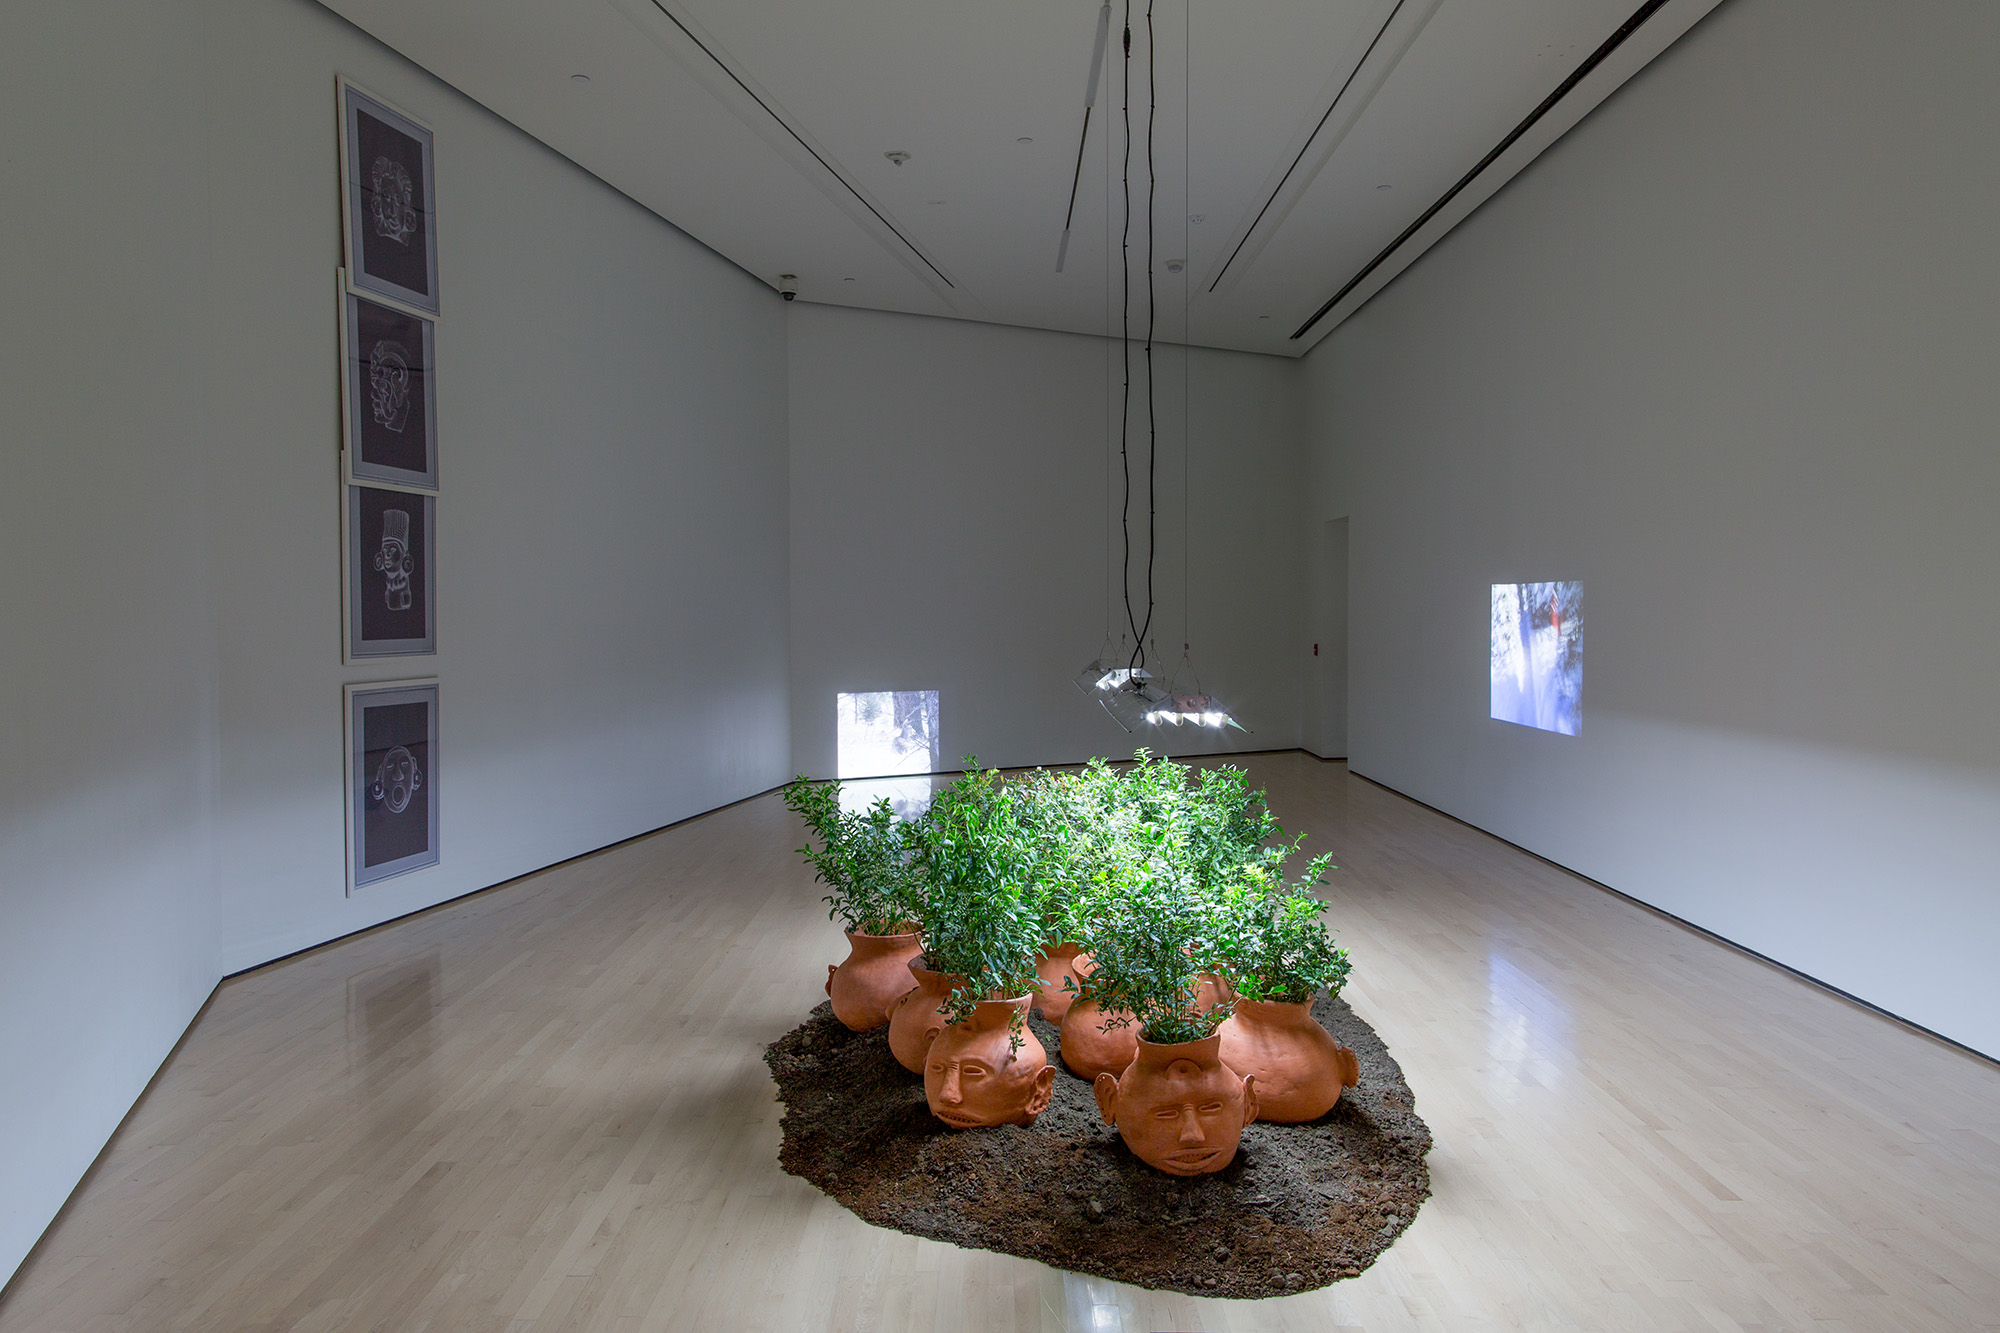 <i>Field Station: Duane Linklater</i>, installation view at the Eli and Edythe Broad Art Museum at Michigan State University, 2017. Photo: Eat Pomegranate Photography